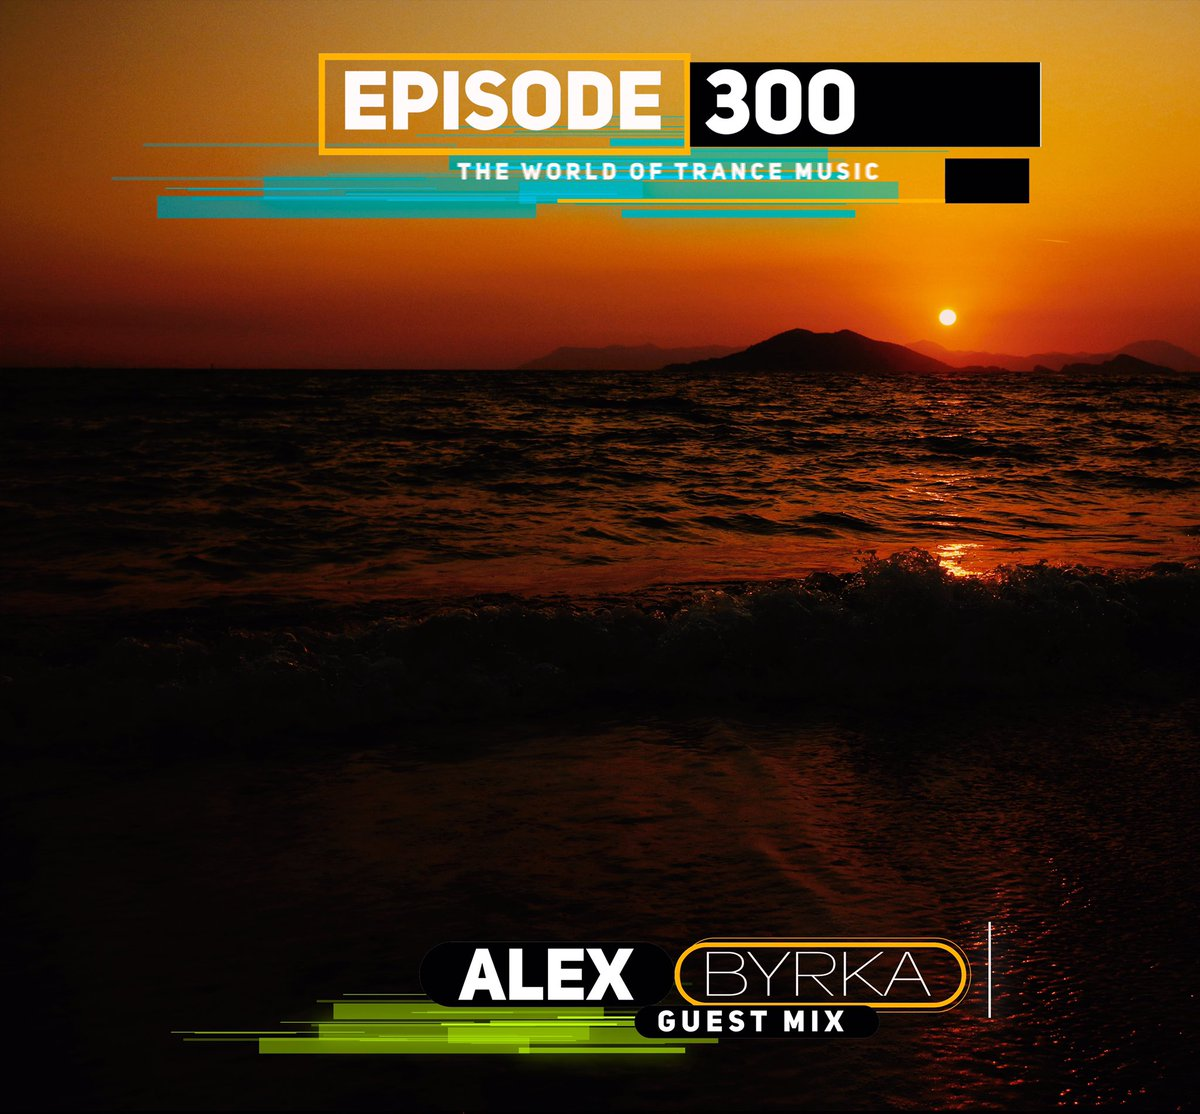 Special Live guest mix for ''The World Of Trance Music Episode 300'' is here in HQ audio with great tracks by  @Aurosonic @JordyEley @LastSoldier_mus  @csystems @Darudevil ,exclusive with @YorgeVan & more.. https://t.co/FrEslaODCW #TranceFamily #Livestream #guestmix #Euphoria https://t.co/sEjrAz92dJ